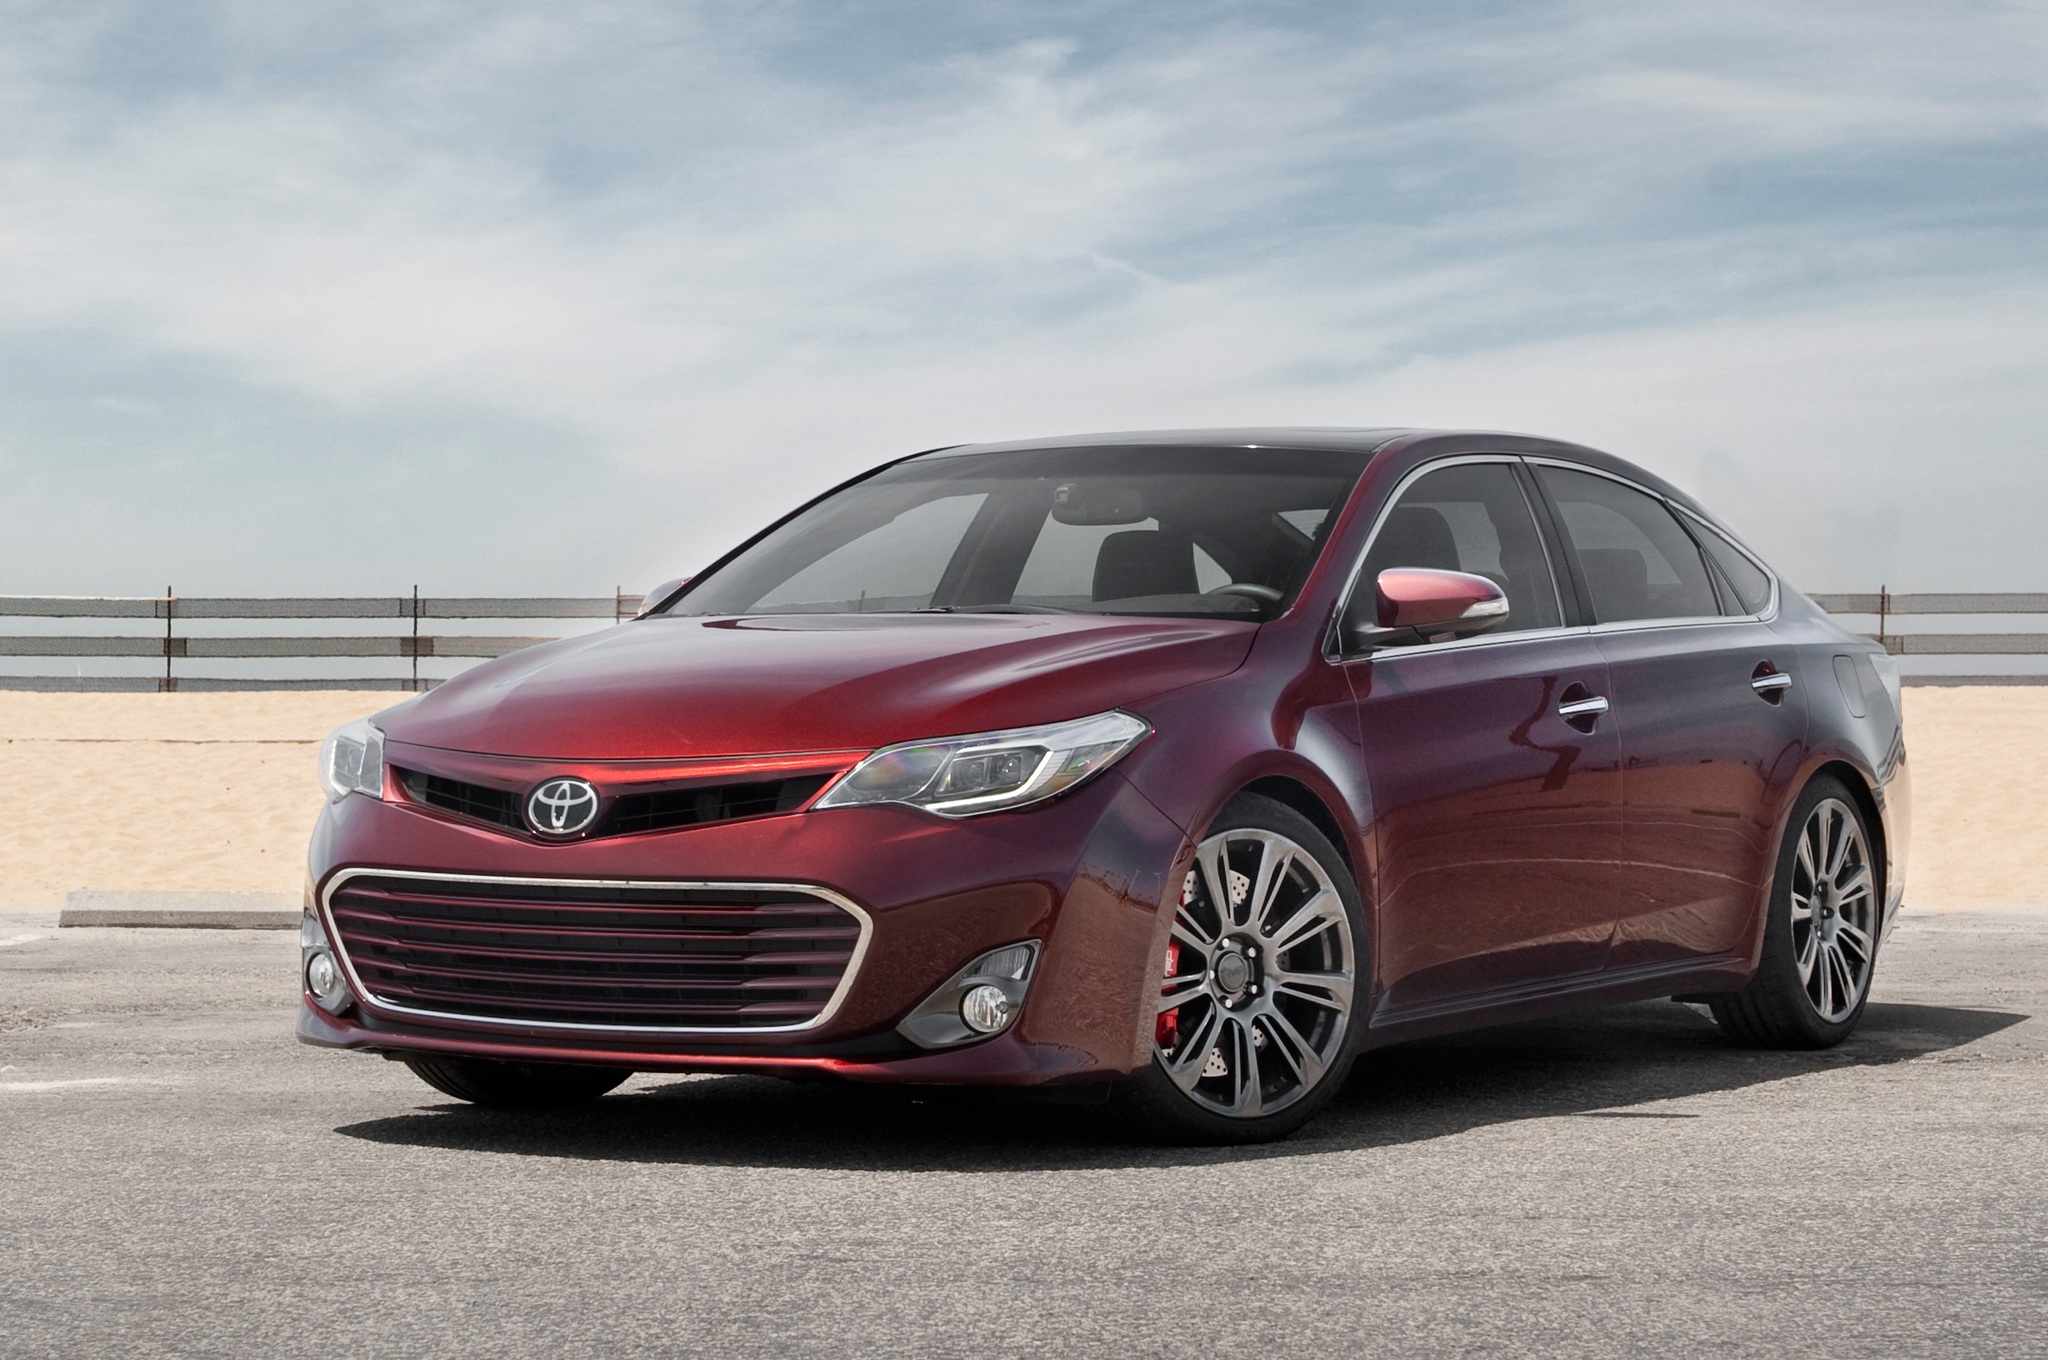 2013 toyota avalon trd edition first test [ 2048 x 1360 Pixel ]